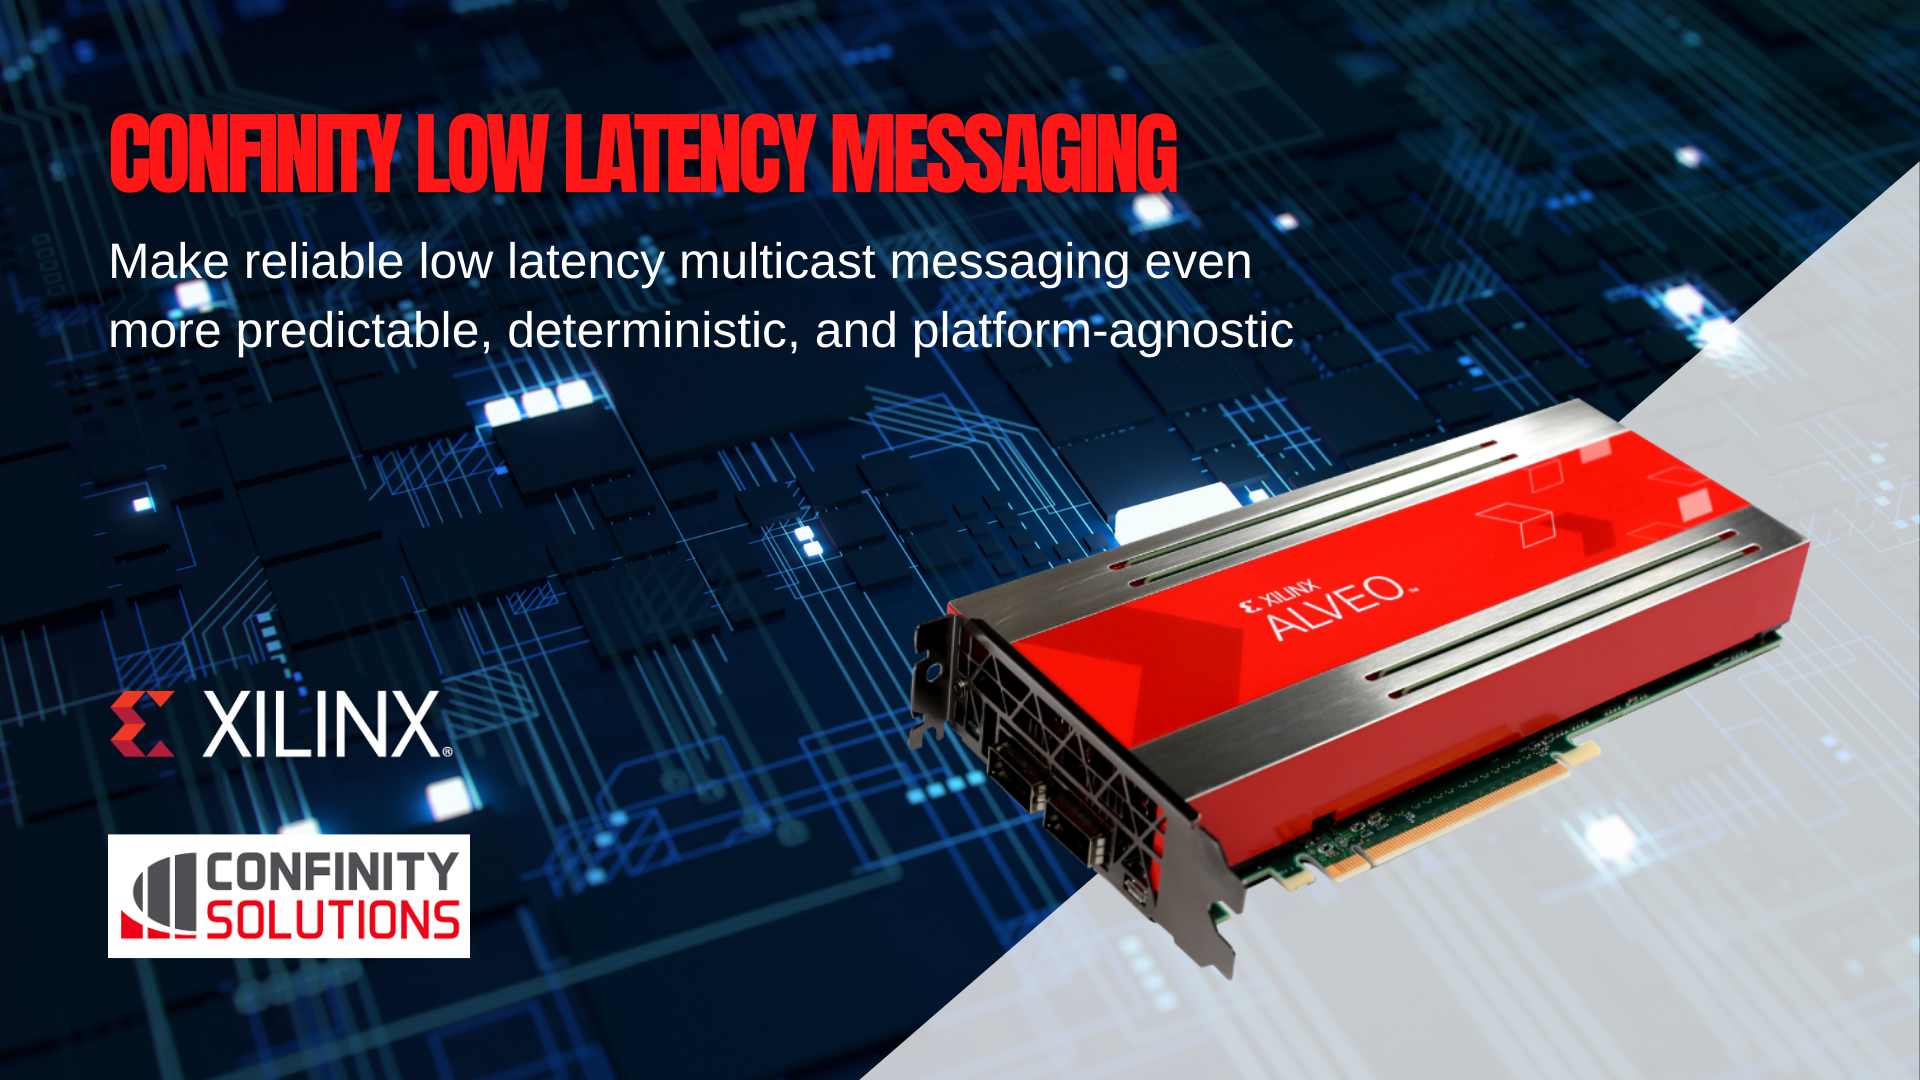 Confinity Low Latency Messaging